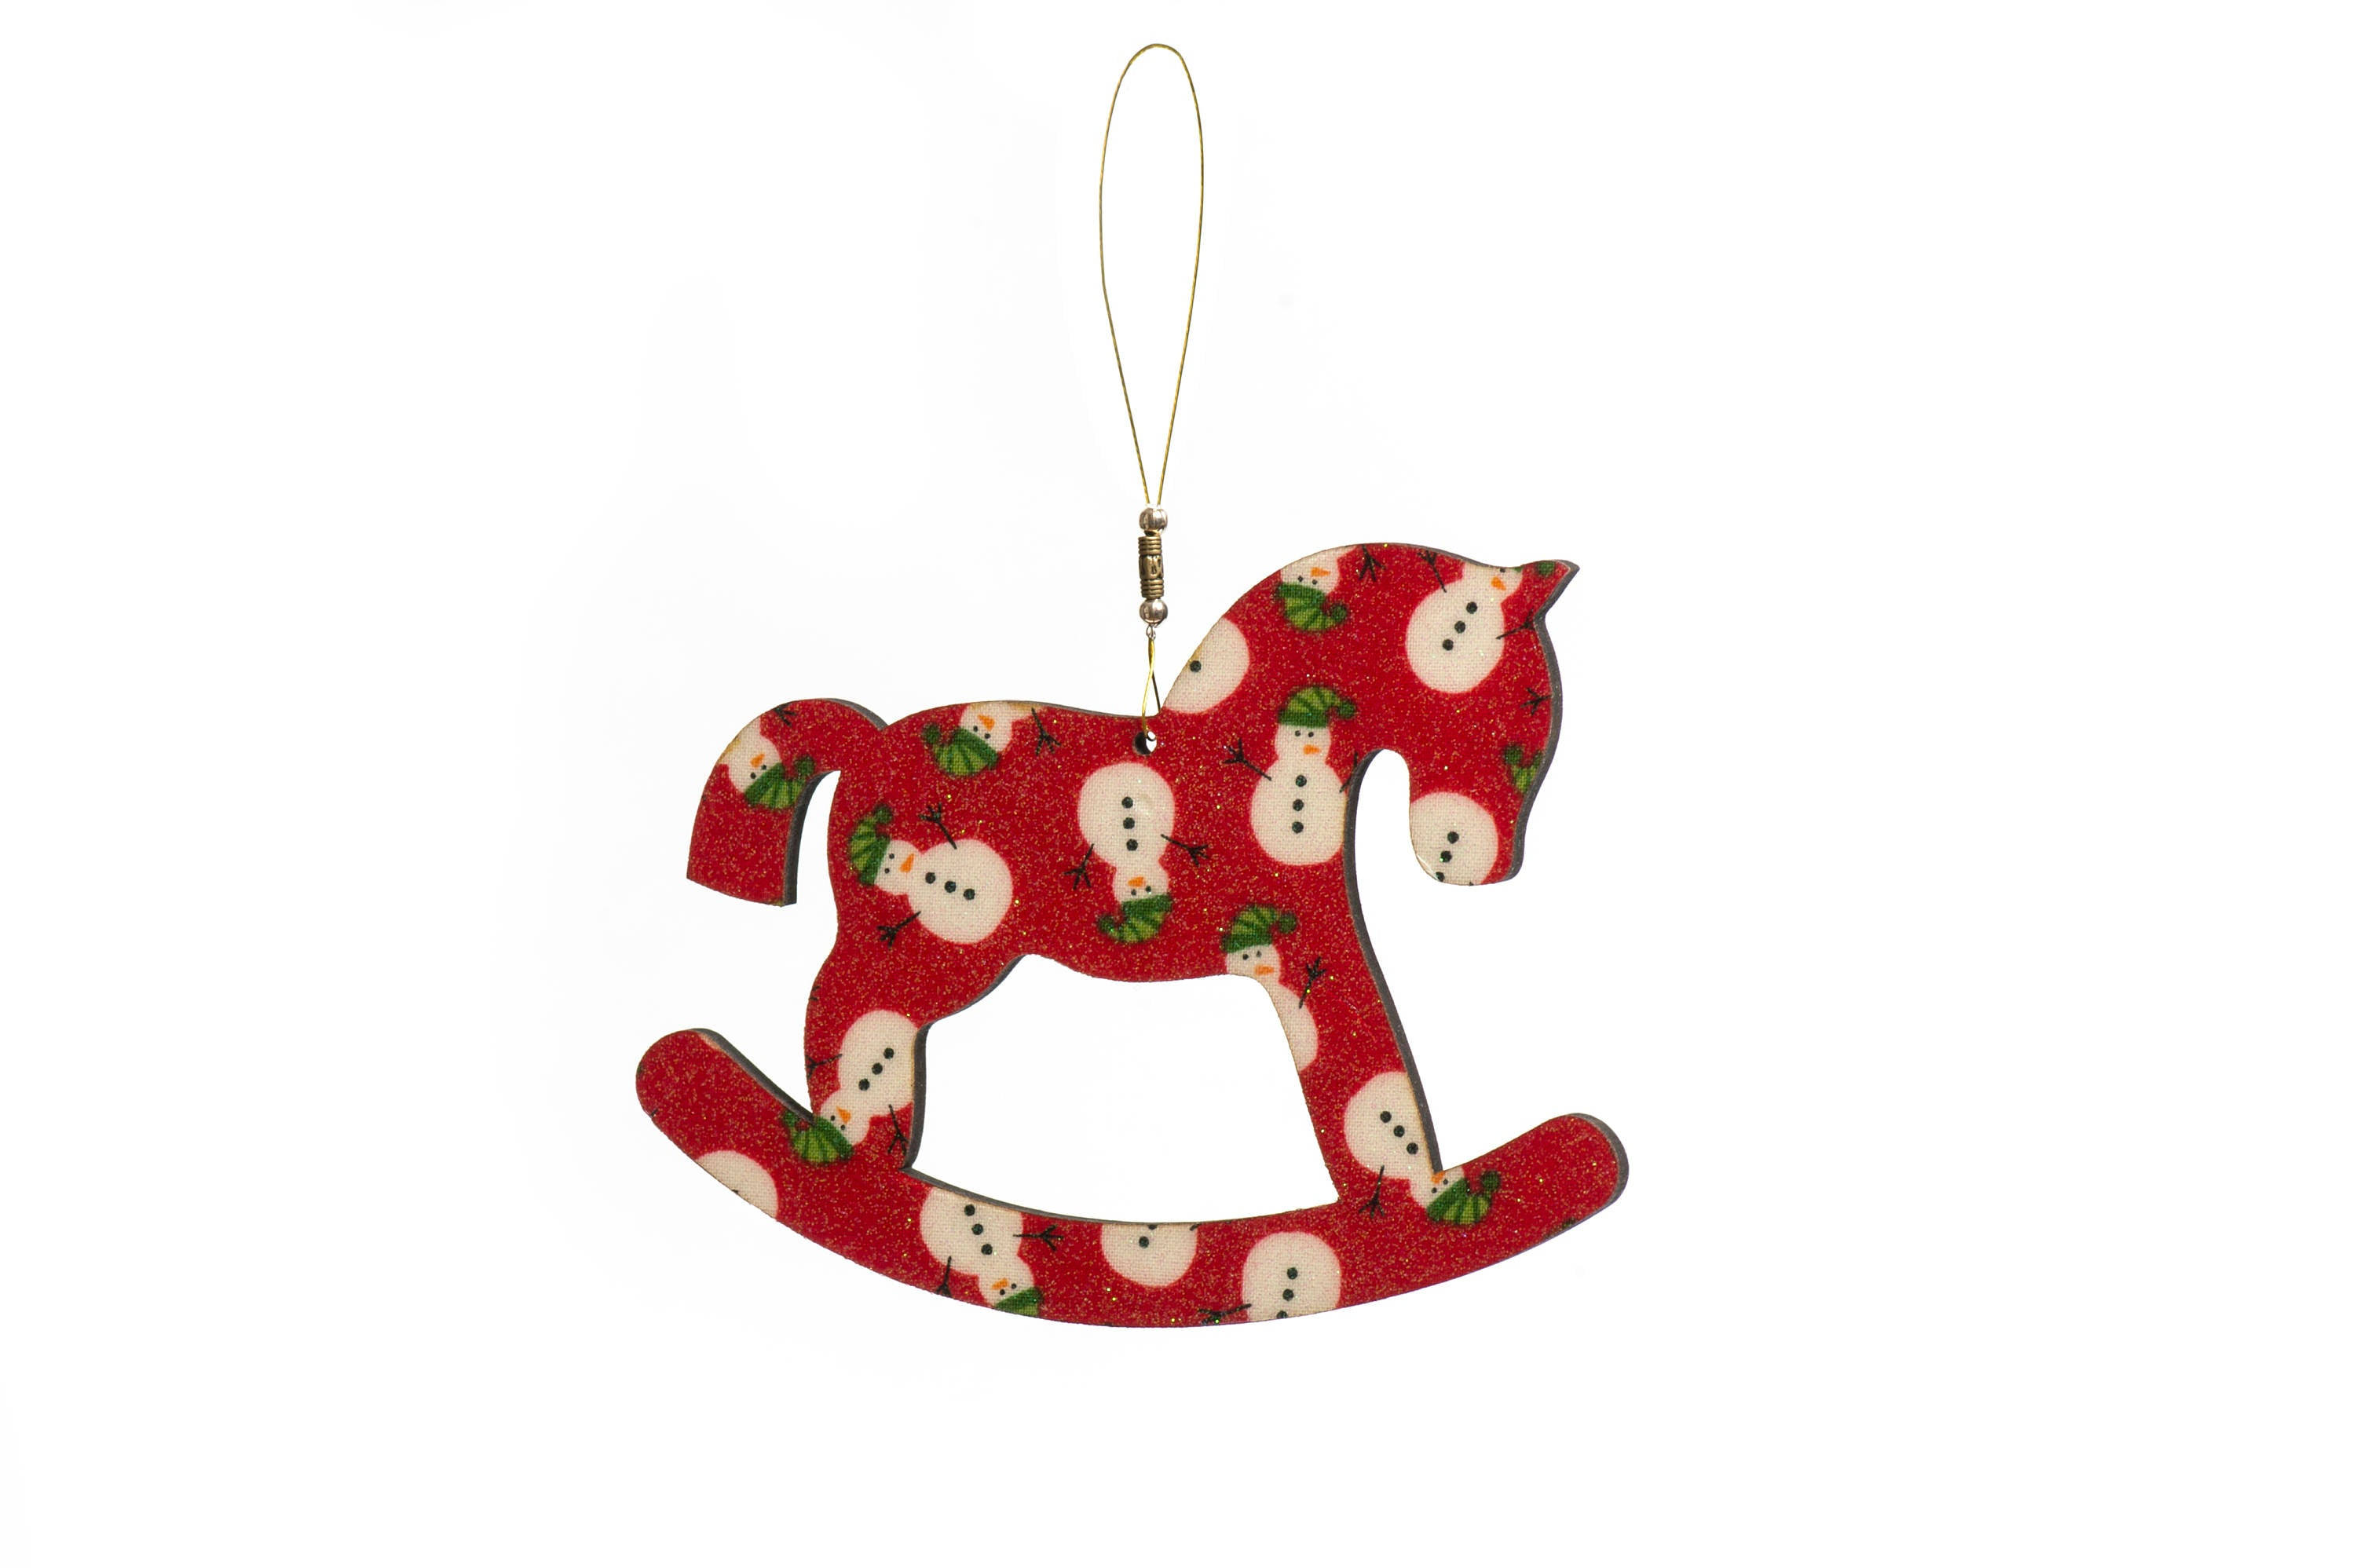 Rocking Horse Christmas Tree Decoration - Handmade | Crackpots